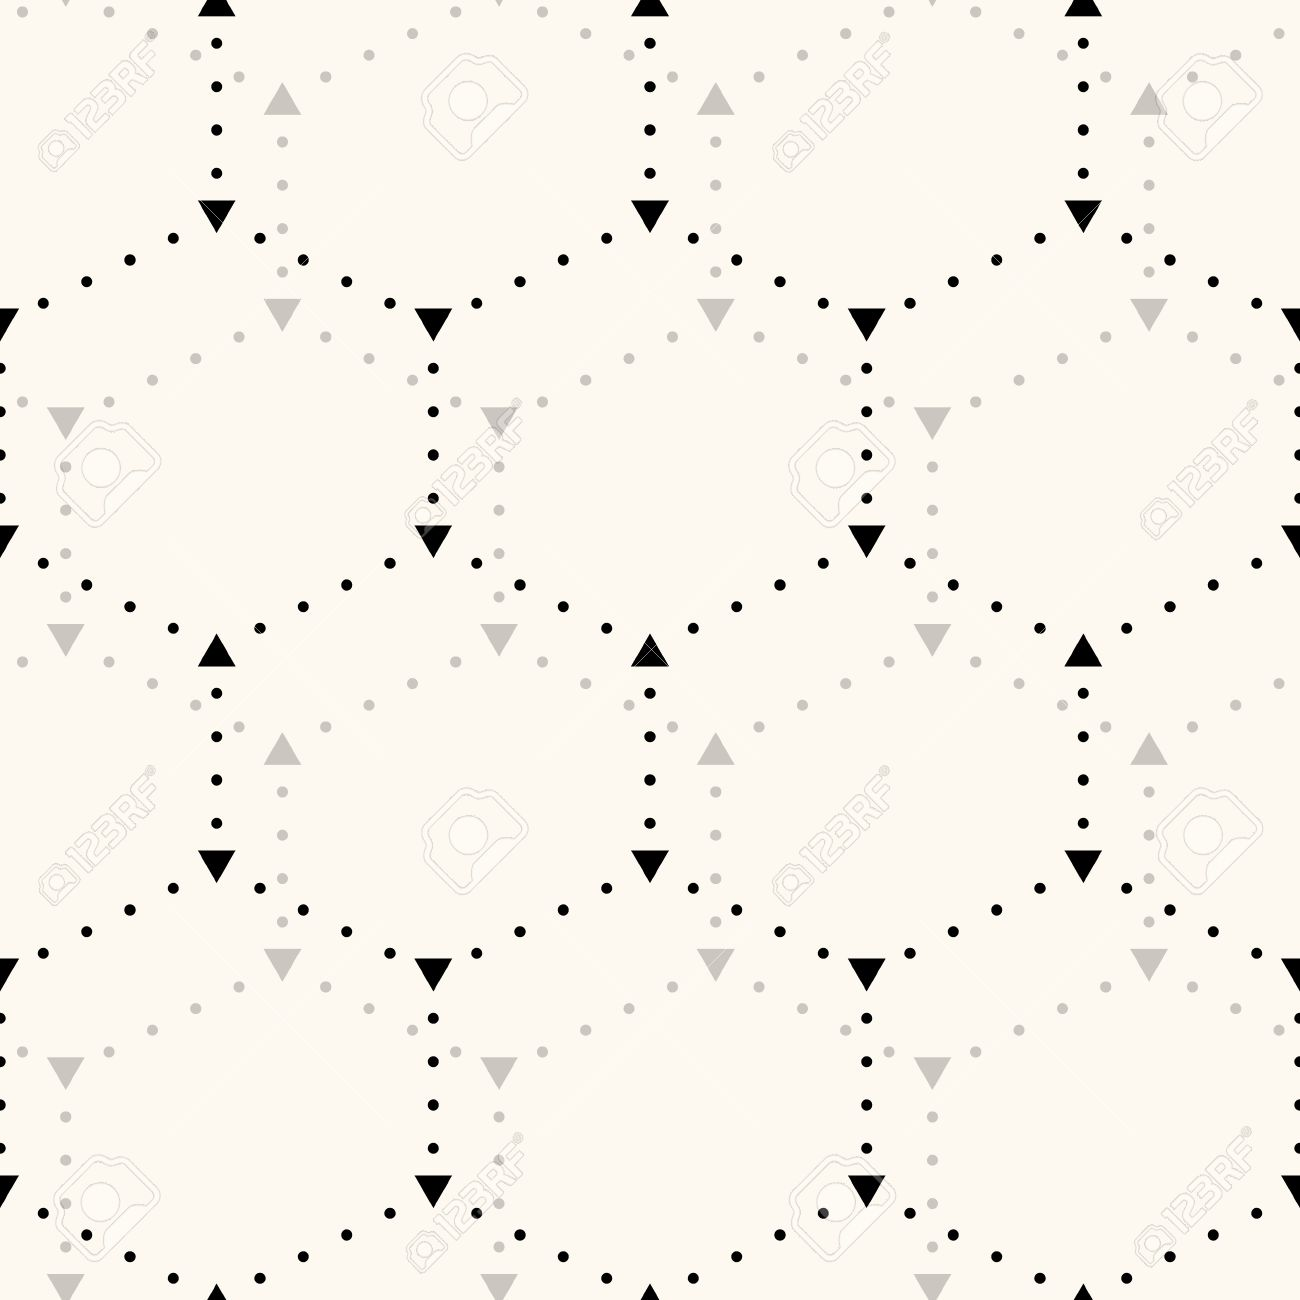 Wallpapers pattern fills web page backgrounds surface textures - Seamless Hexagon Pattern Can Be Used For Wallpaper Pattern Fills Web Page Background